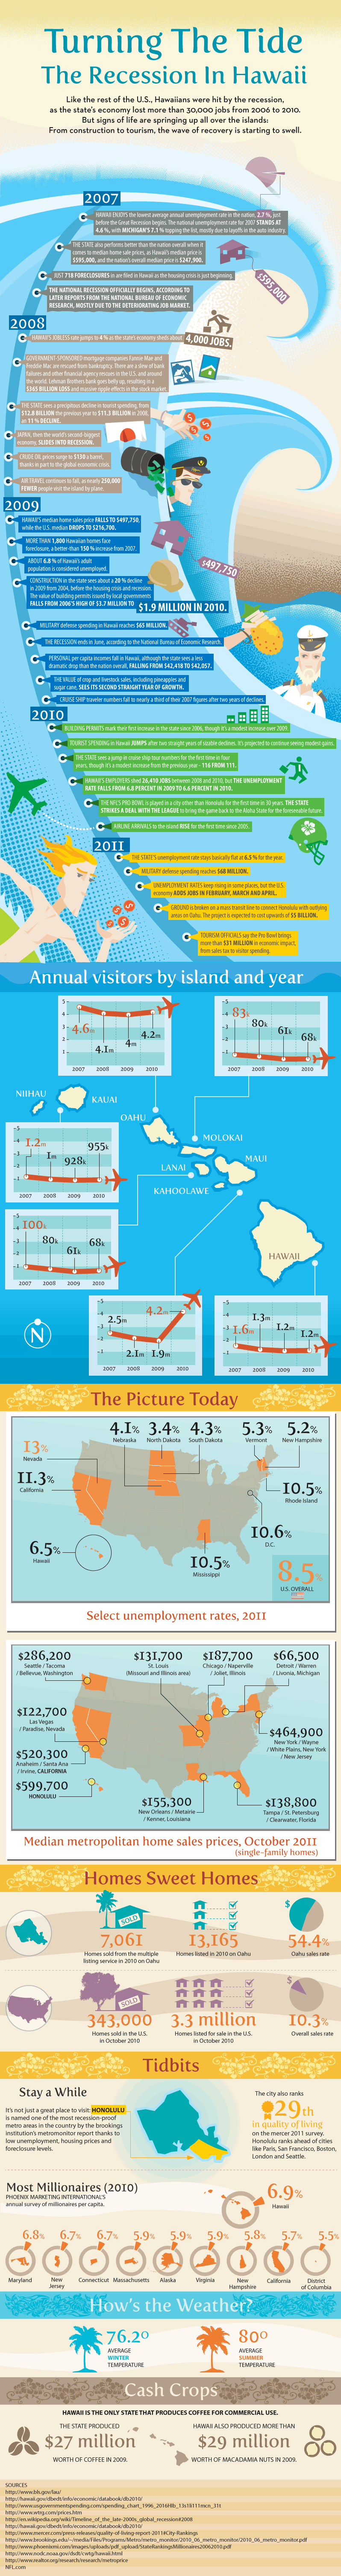 Turning The Tide: The Recession In Hawaii